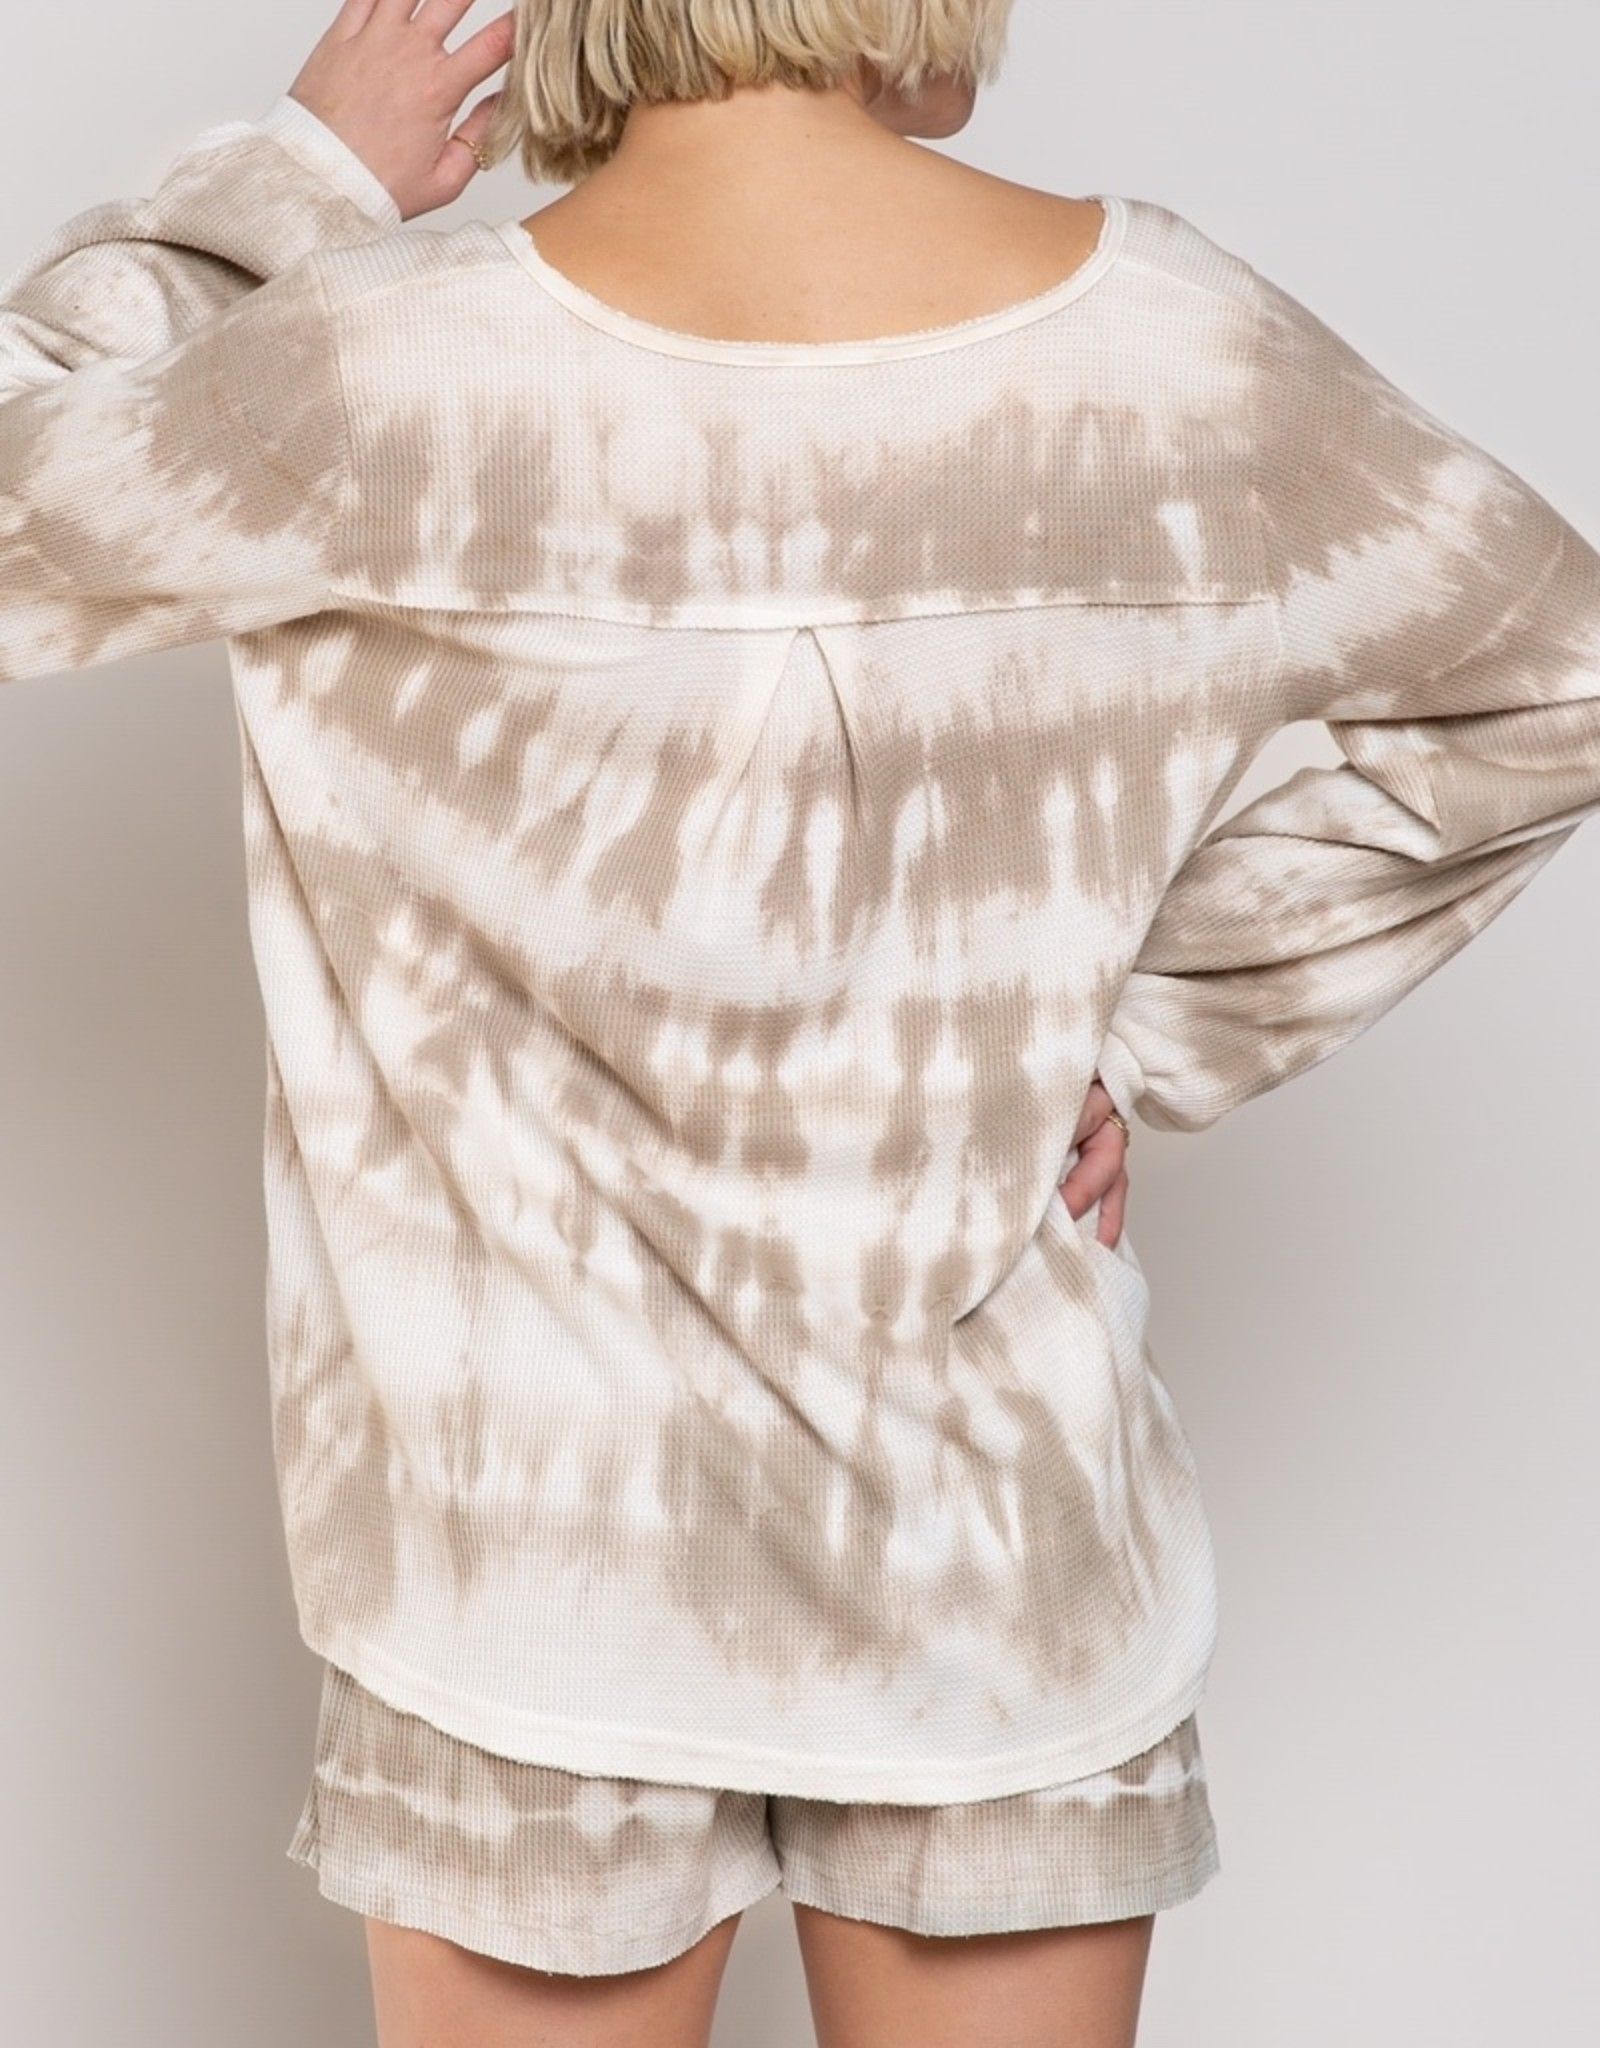 POL Clothing Thermal Knit Tie Dye Top